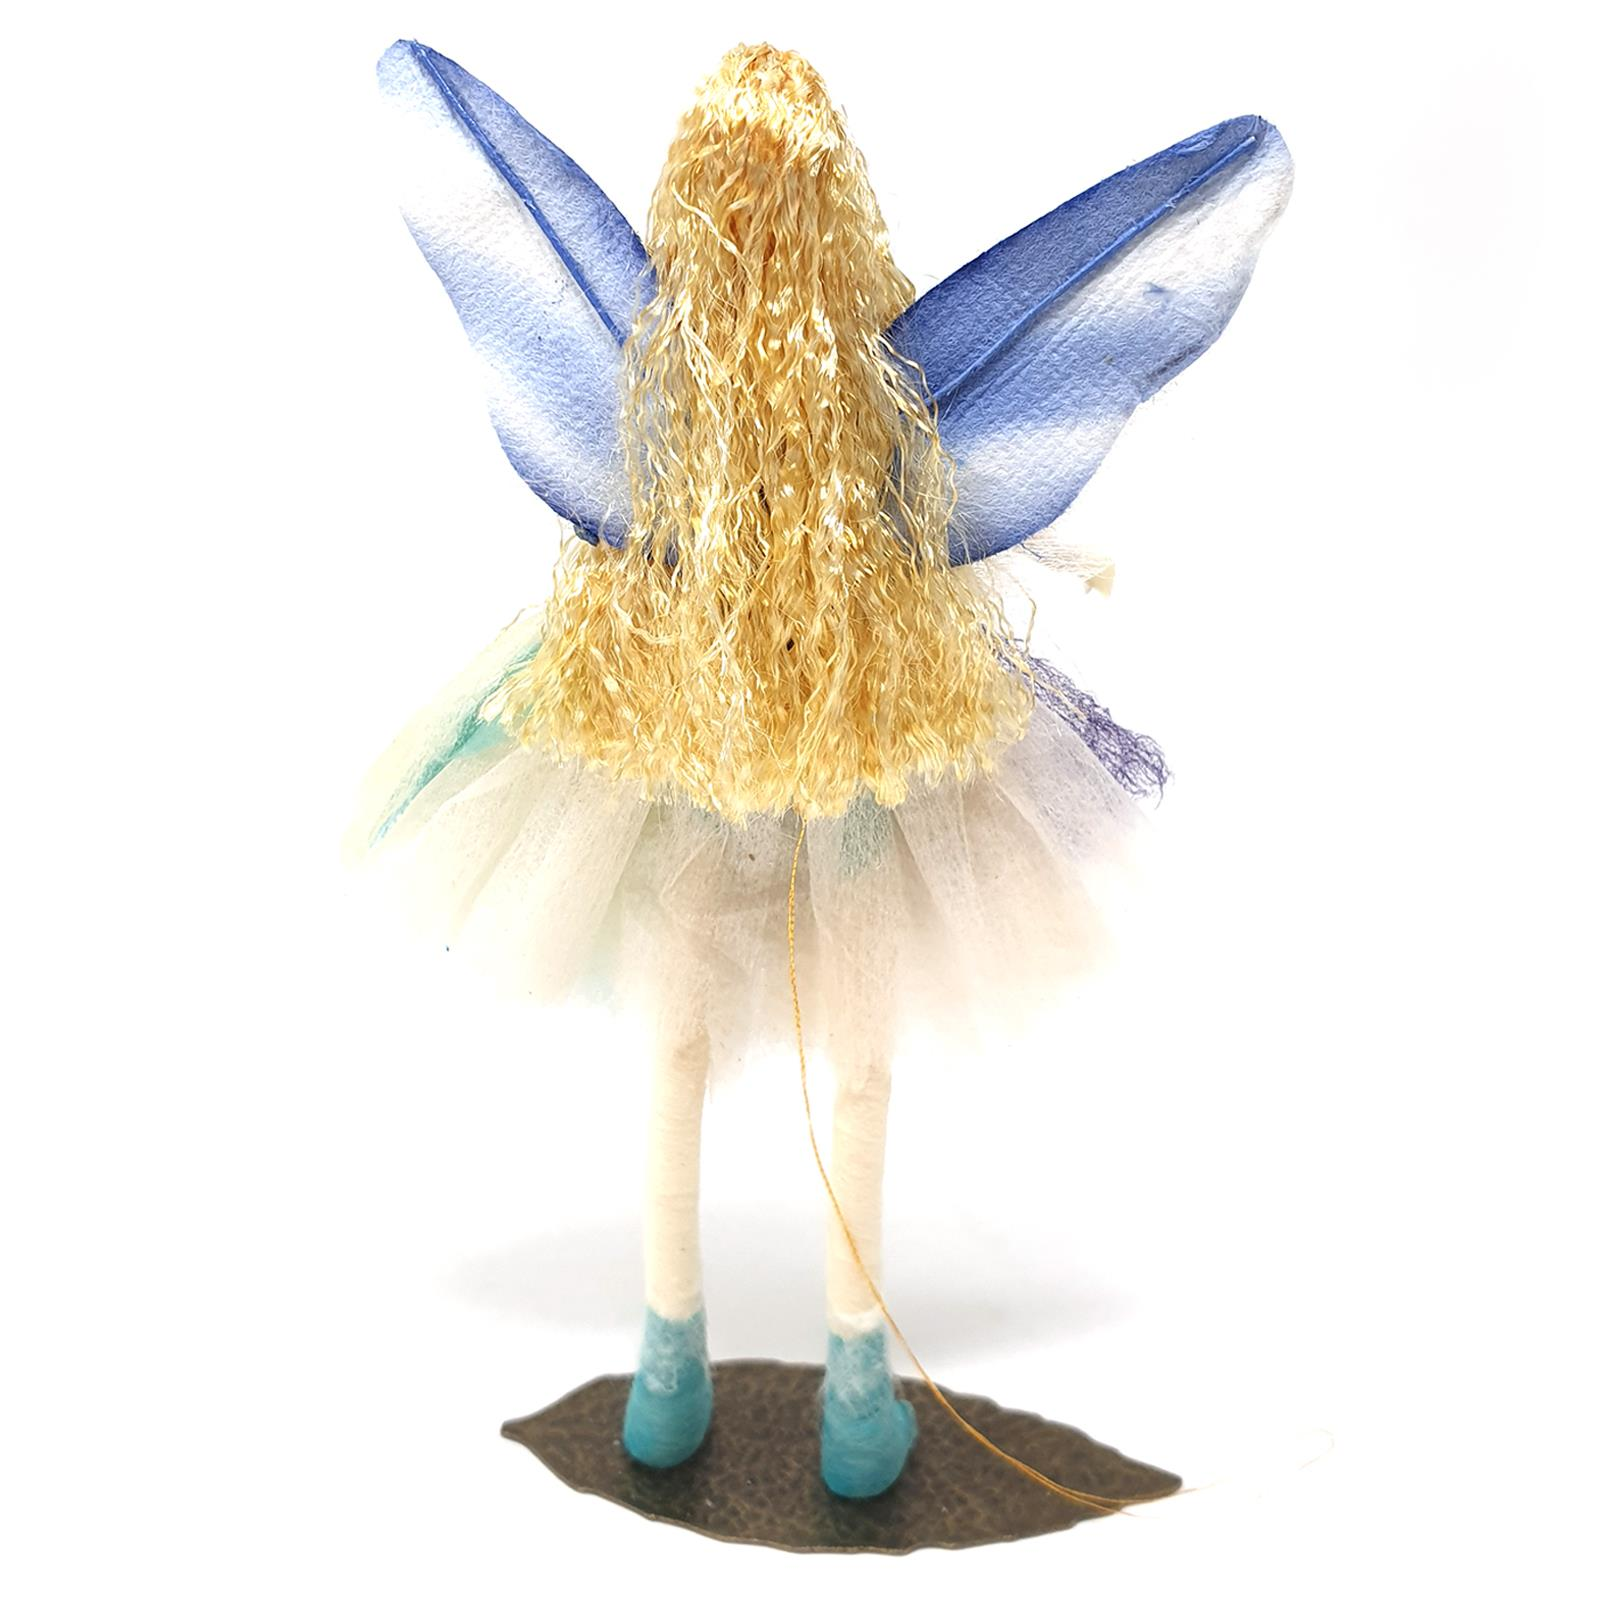 The-Fairy-Family-Collectable-Ornament-Mermaid-Forest-Fairies-Elf-Figurines-Gift thumbnail 31